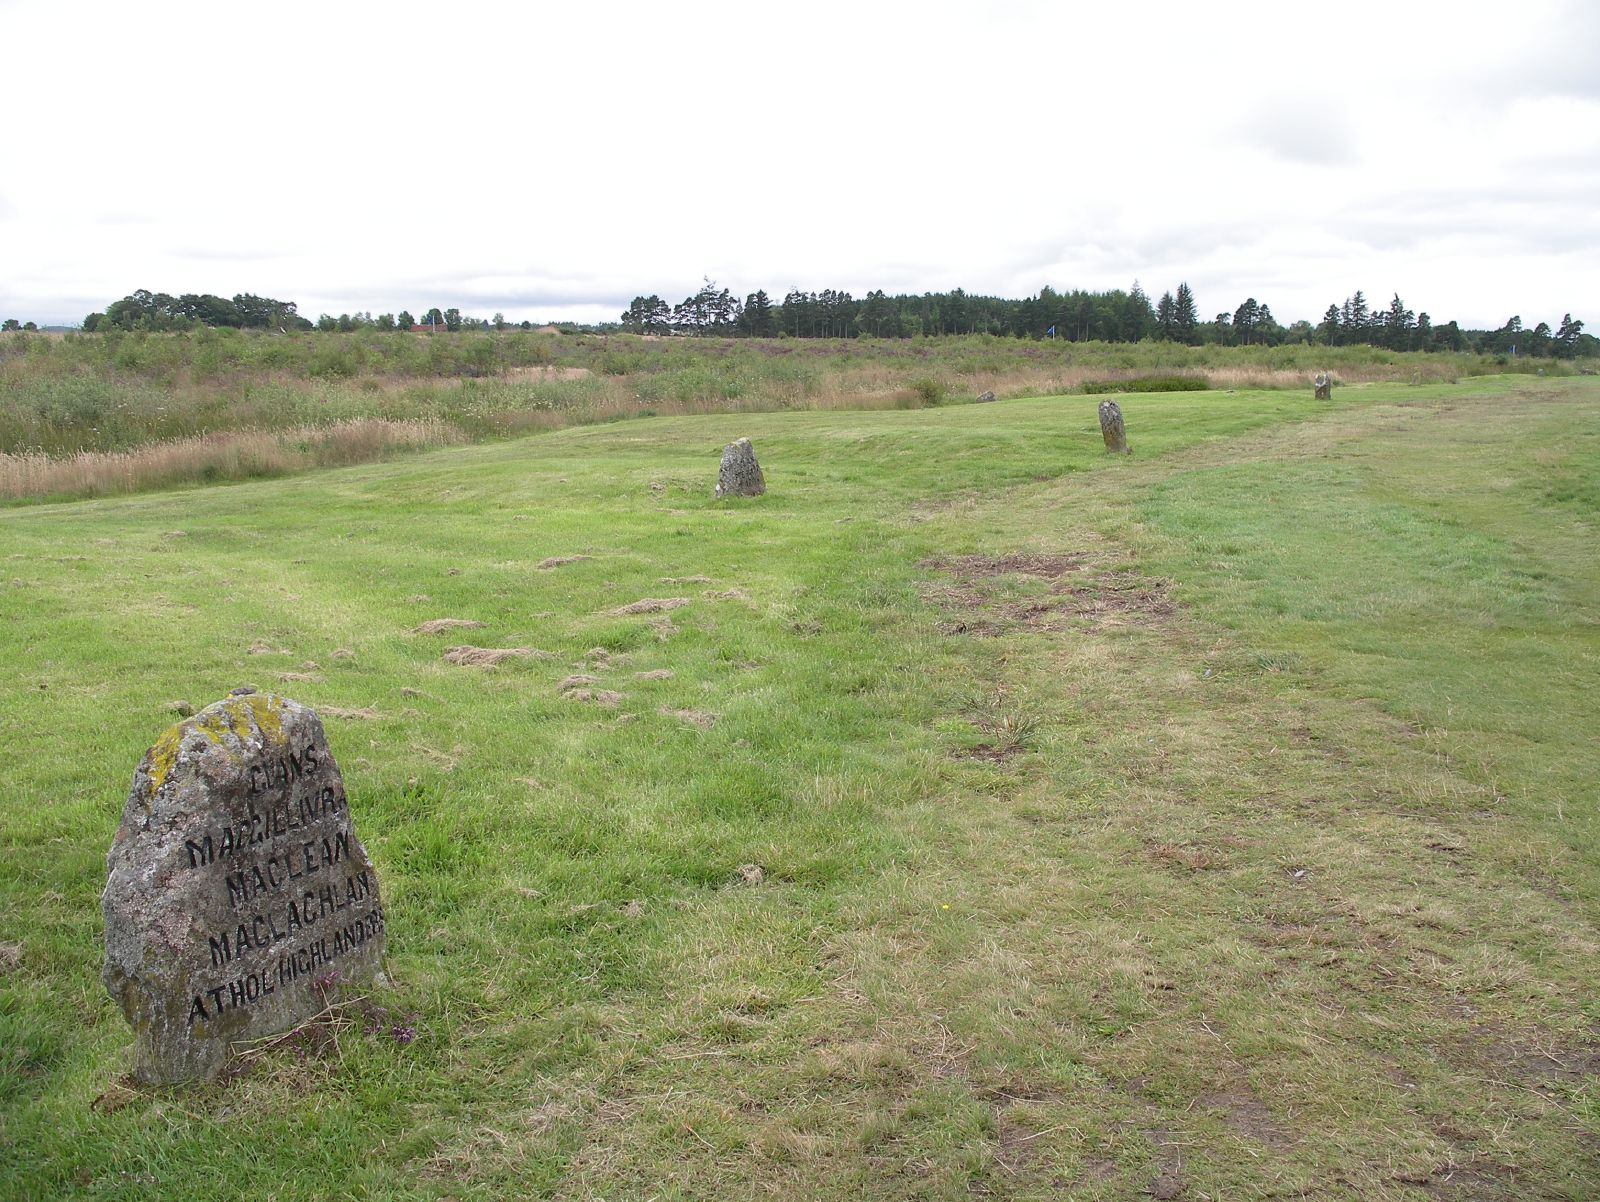 Credit: https://en.wikipedia.org/wiki/Battle_of_Culloden